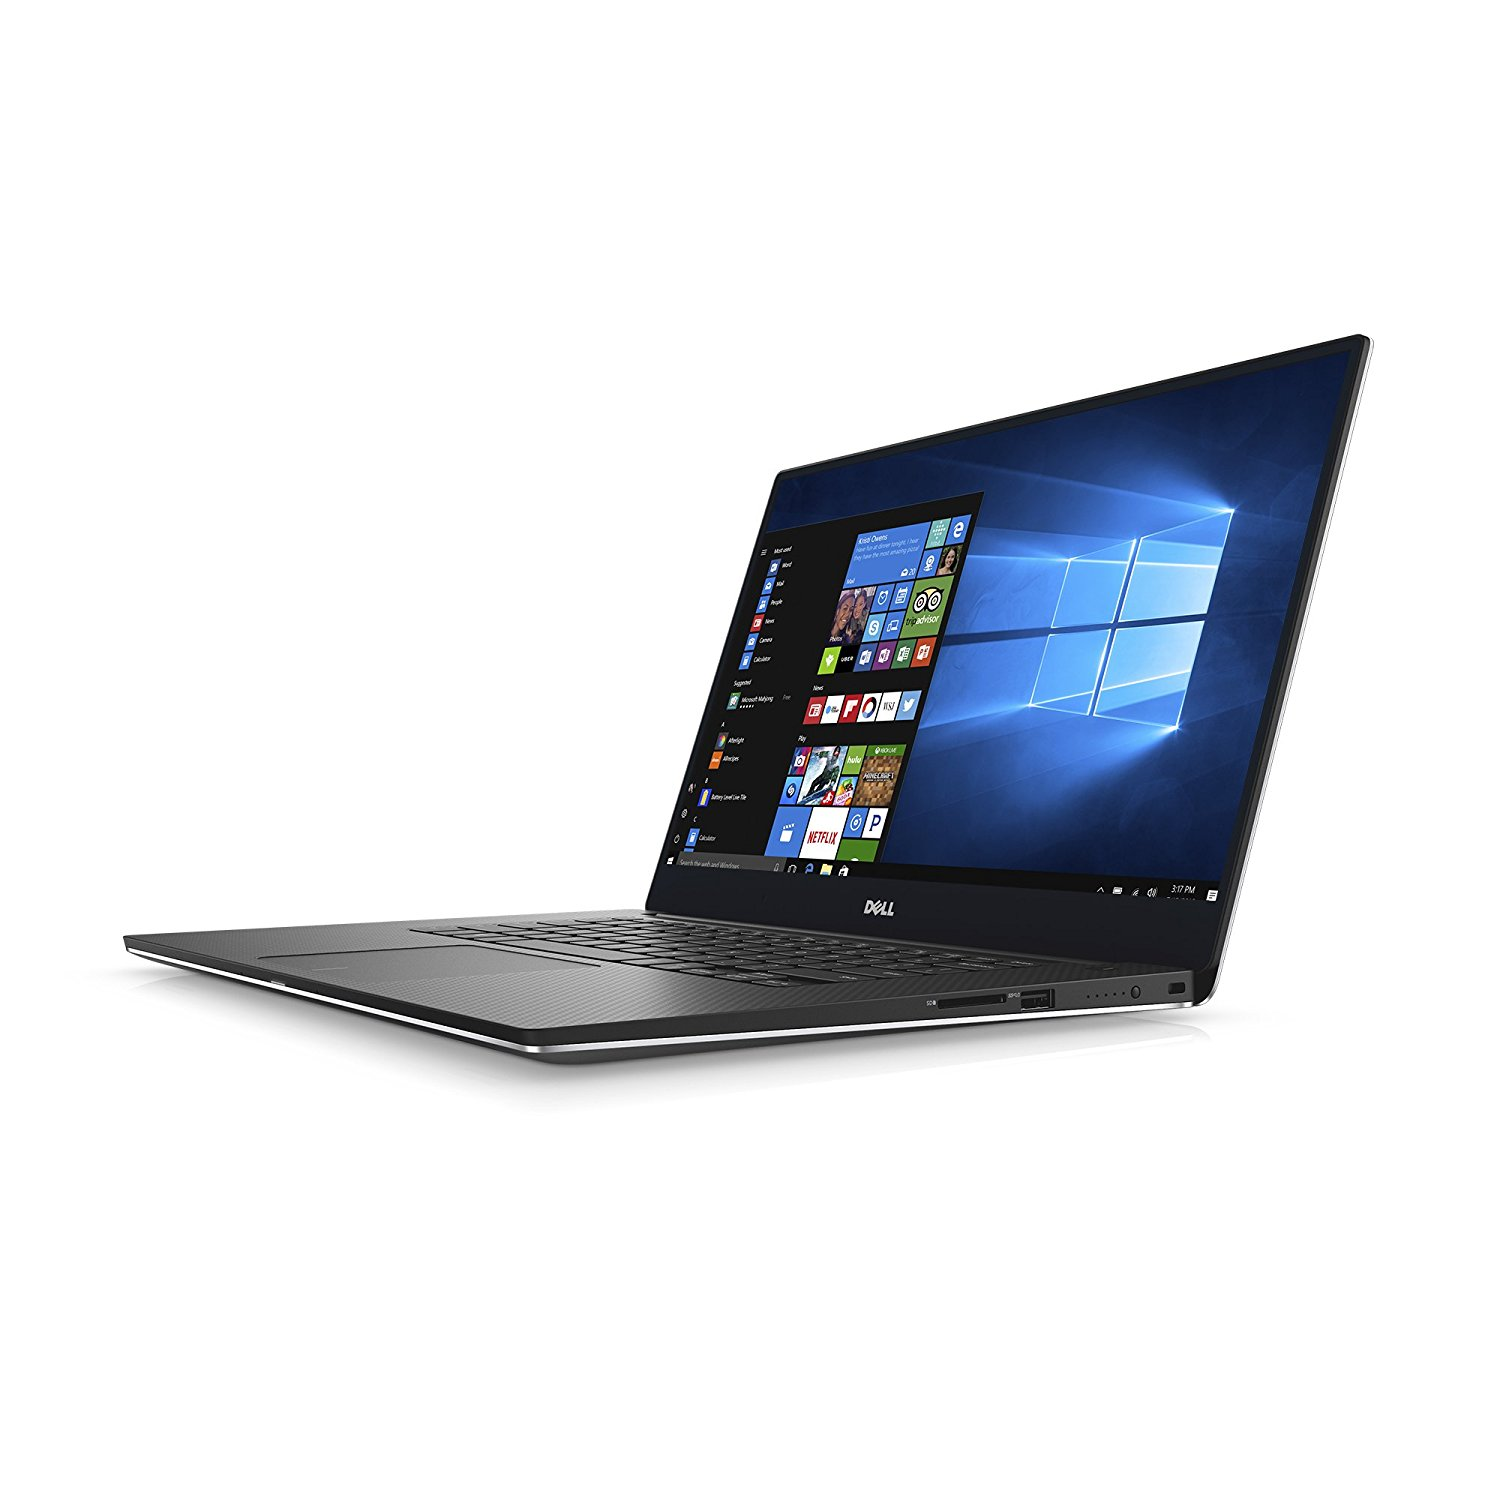 "Dell XPS9560-5000SLV 15.6"" with 4K Touch Display Core i5 8GB, 256GB SSD GTX 1050 Ultra Thin and Light... by Dell"